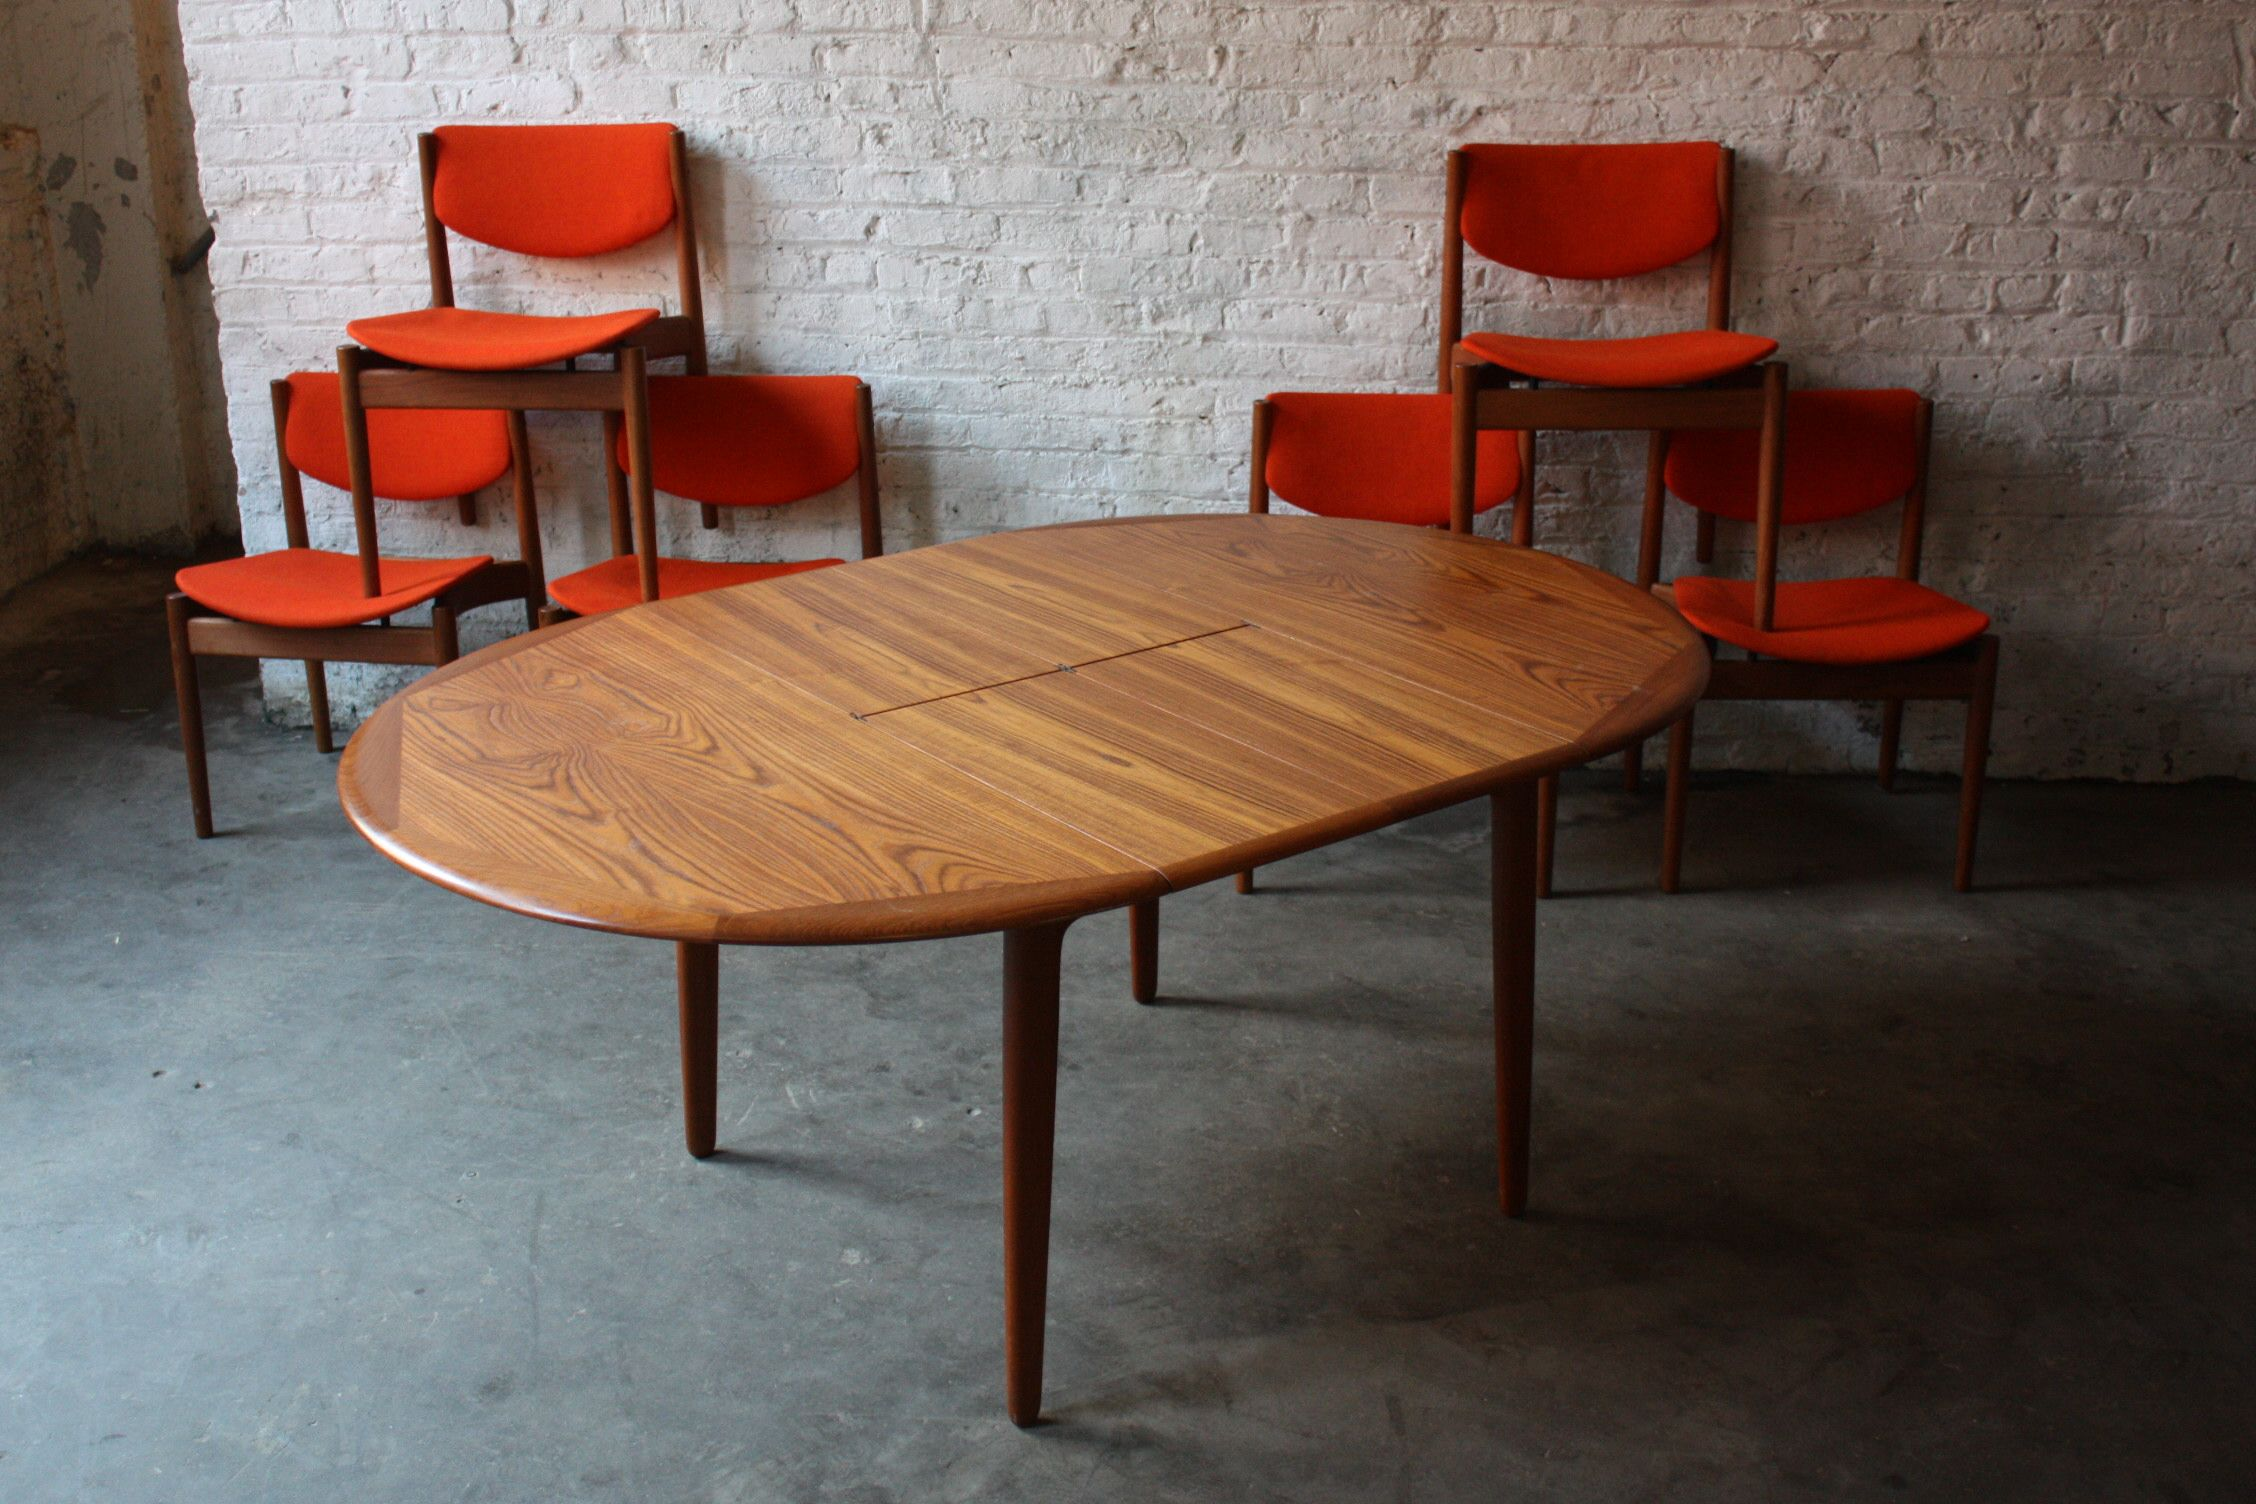 Incredible Dining Table Idea with Round Shaped Idea and Wooden Frame